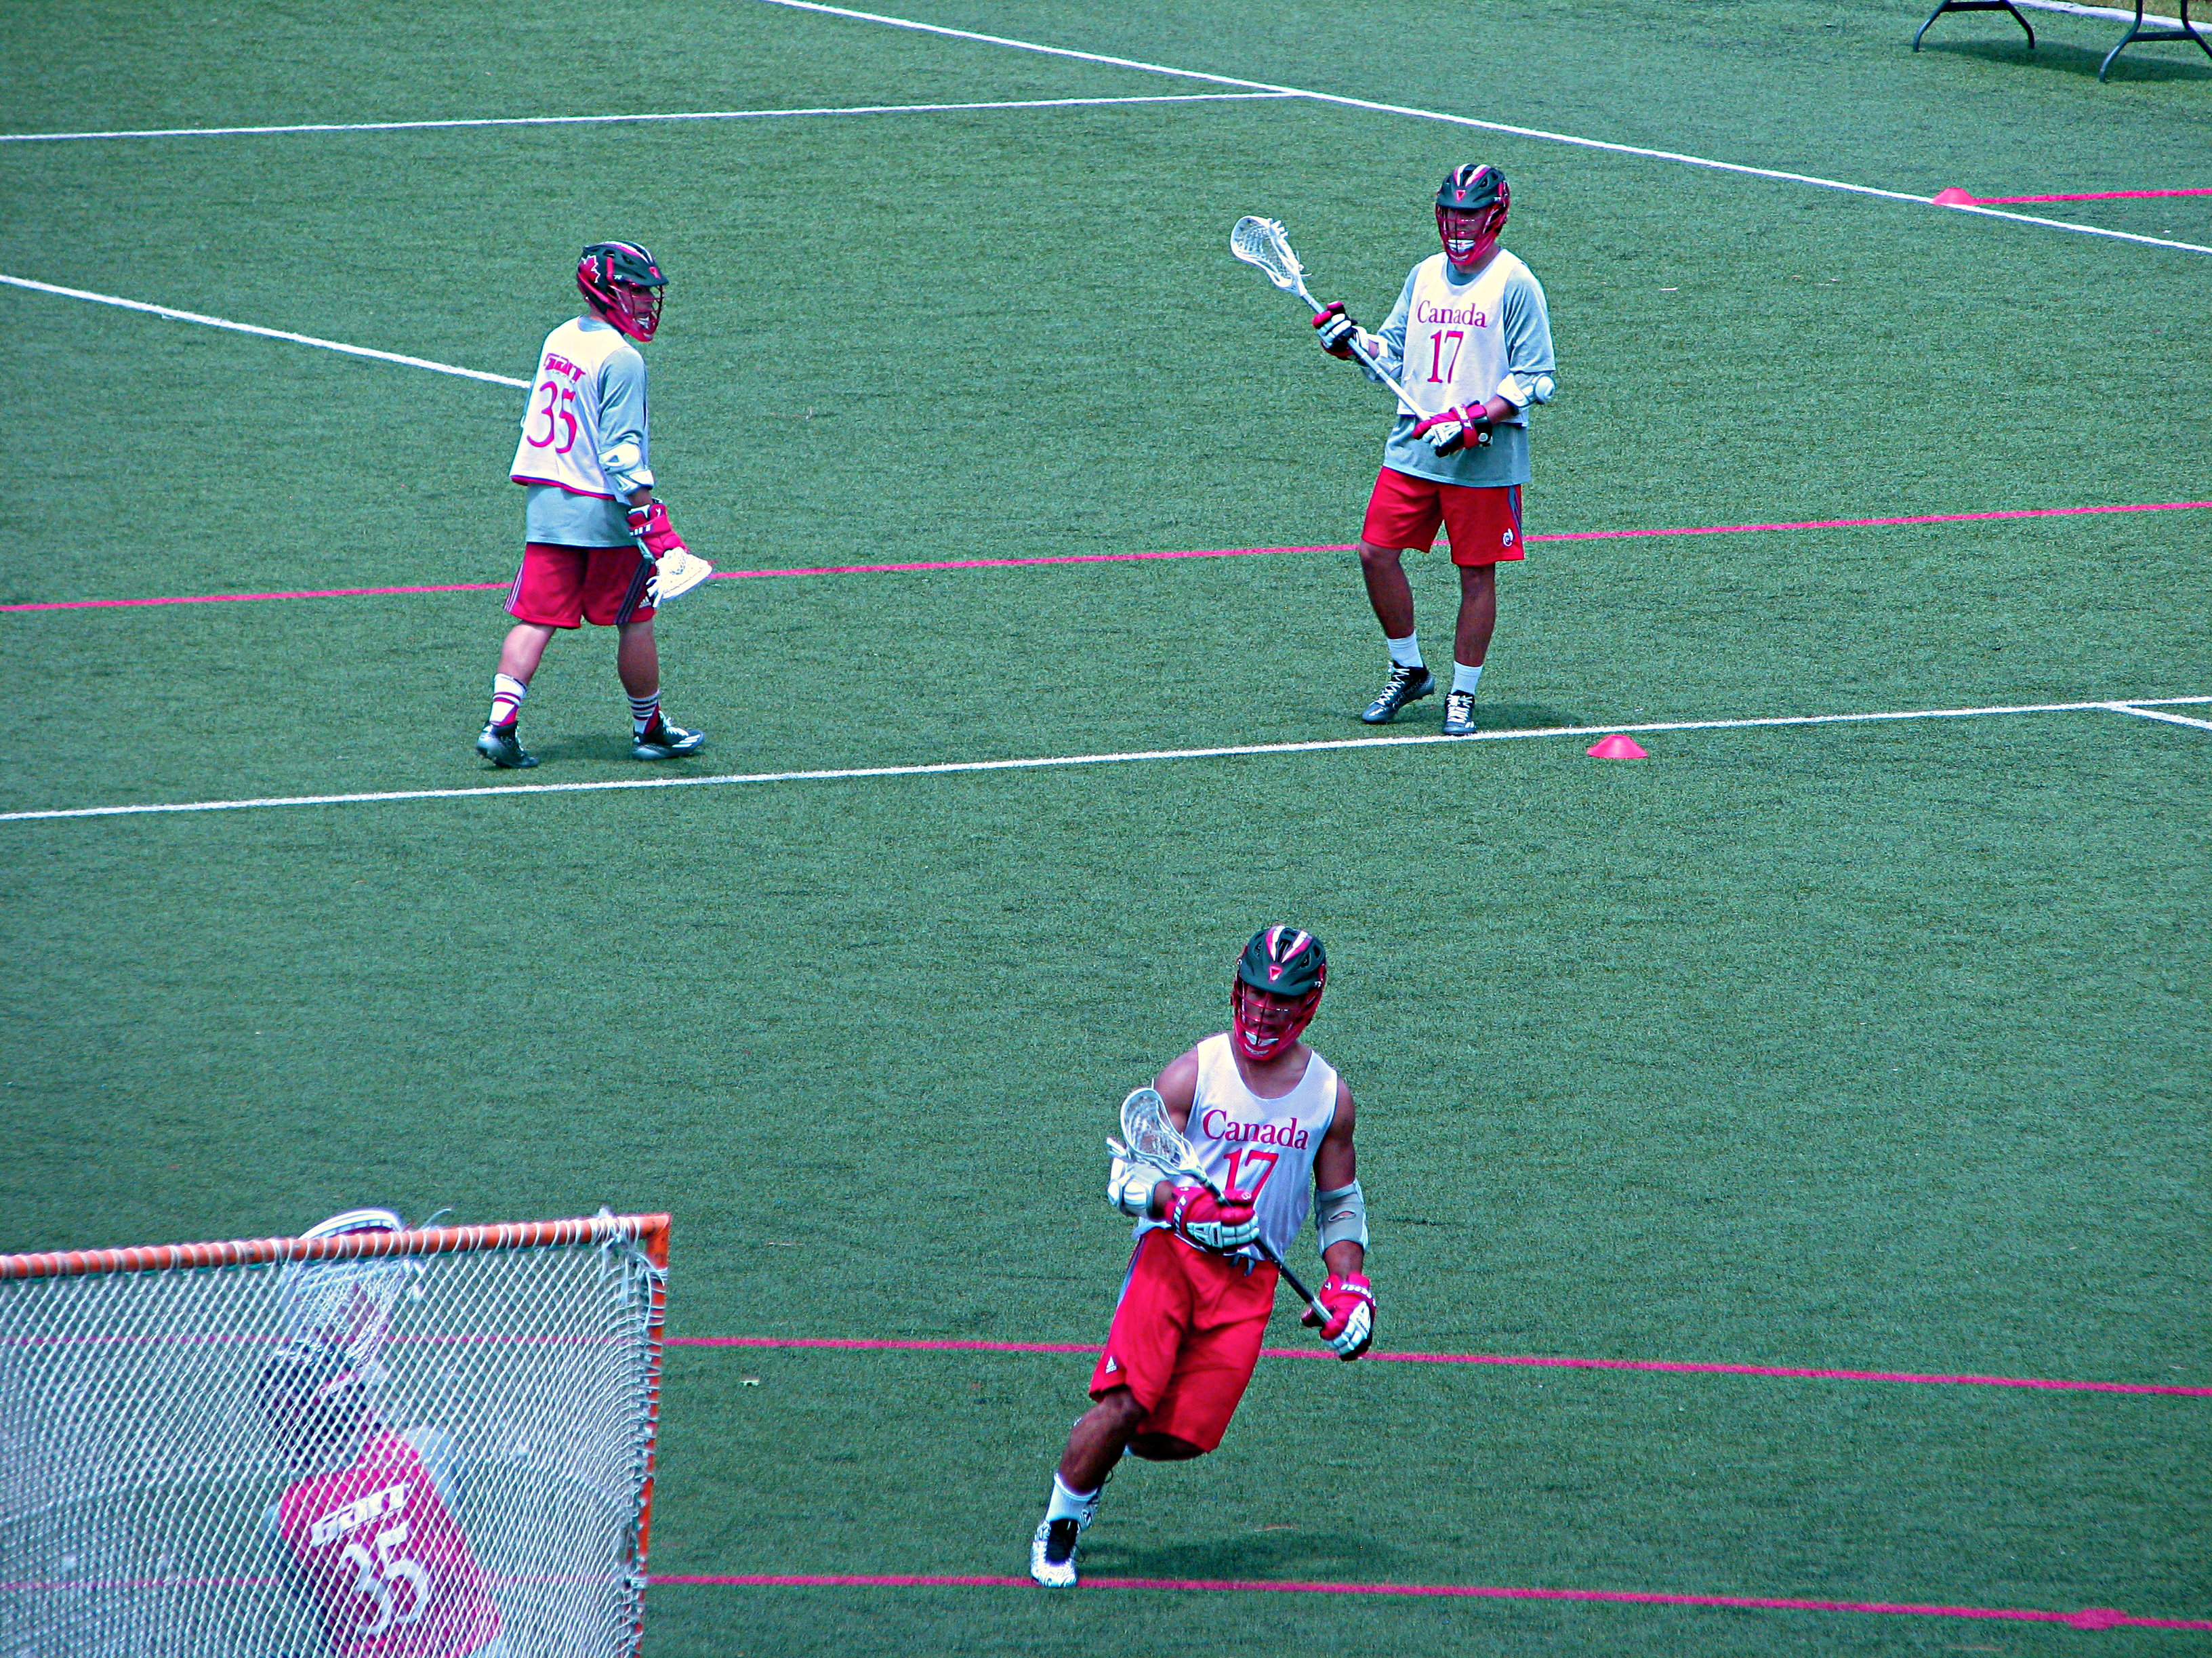 Photo: Canadian lacrosse team